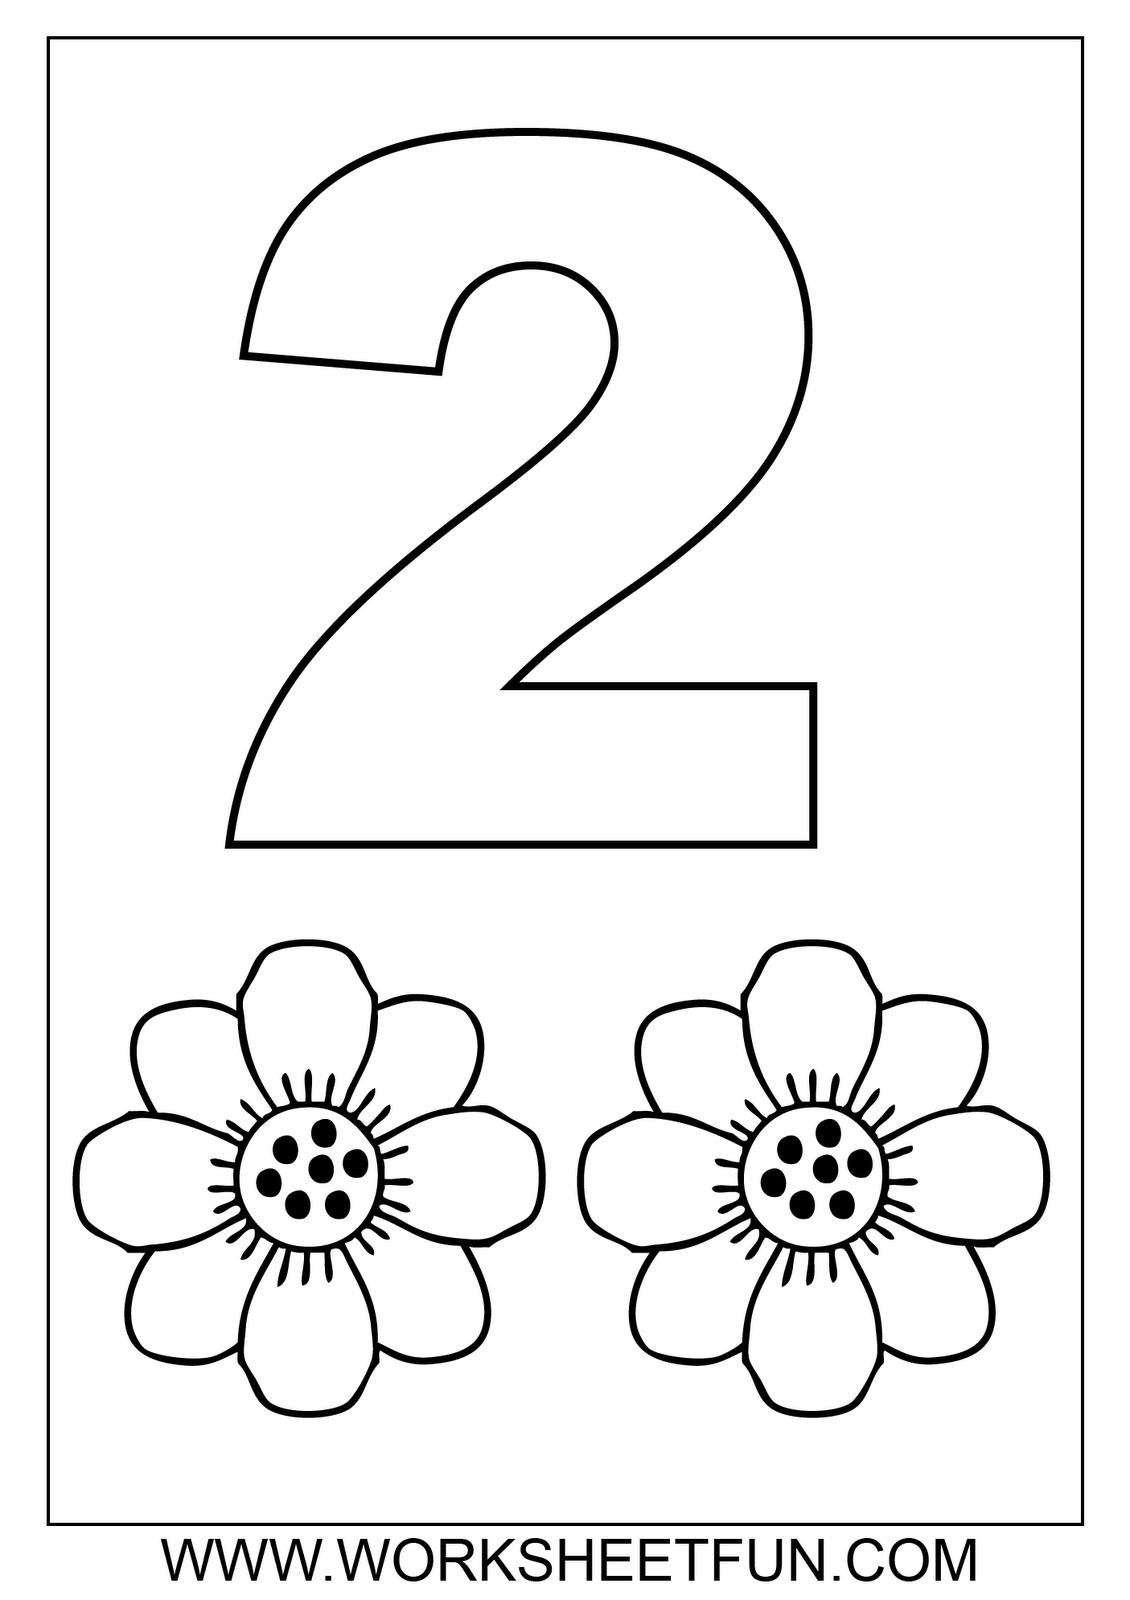 preschool number coloring pages - Number 2 Coloring Page